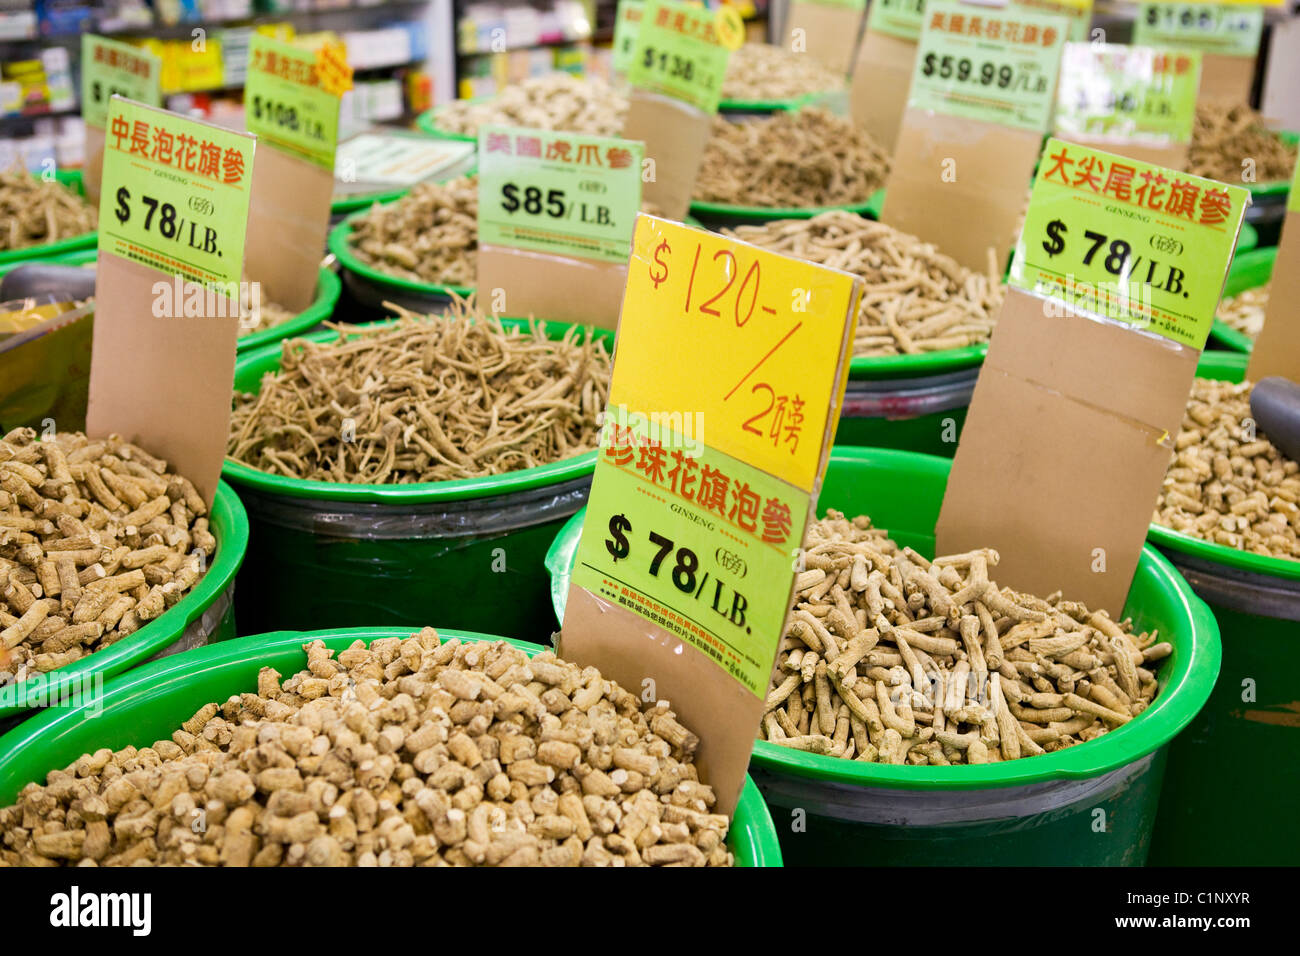 Chinese herbal roots on sale in market. - Stock Image